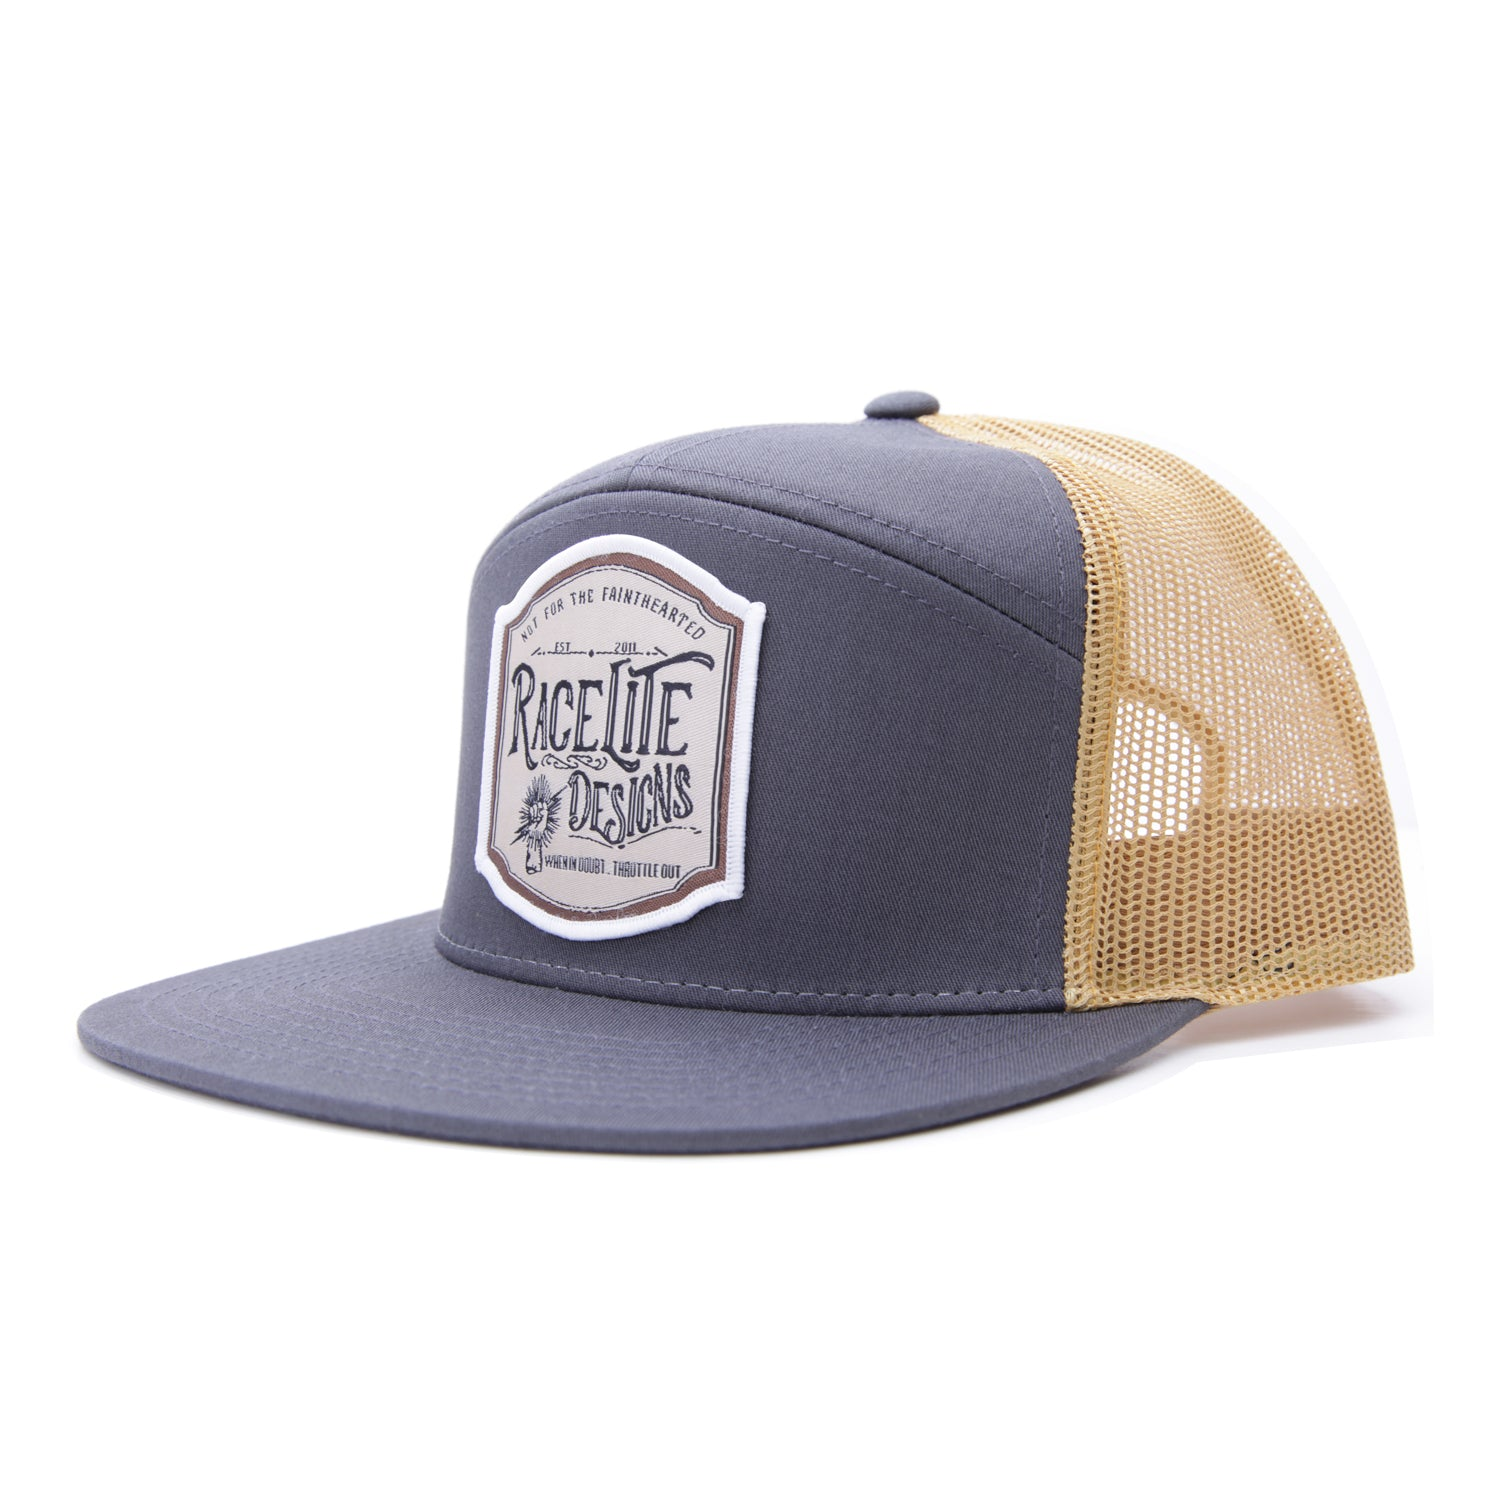 Racelite Designs Not For The Faint Hearted 7 Panel Hat Side View